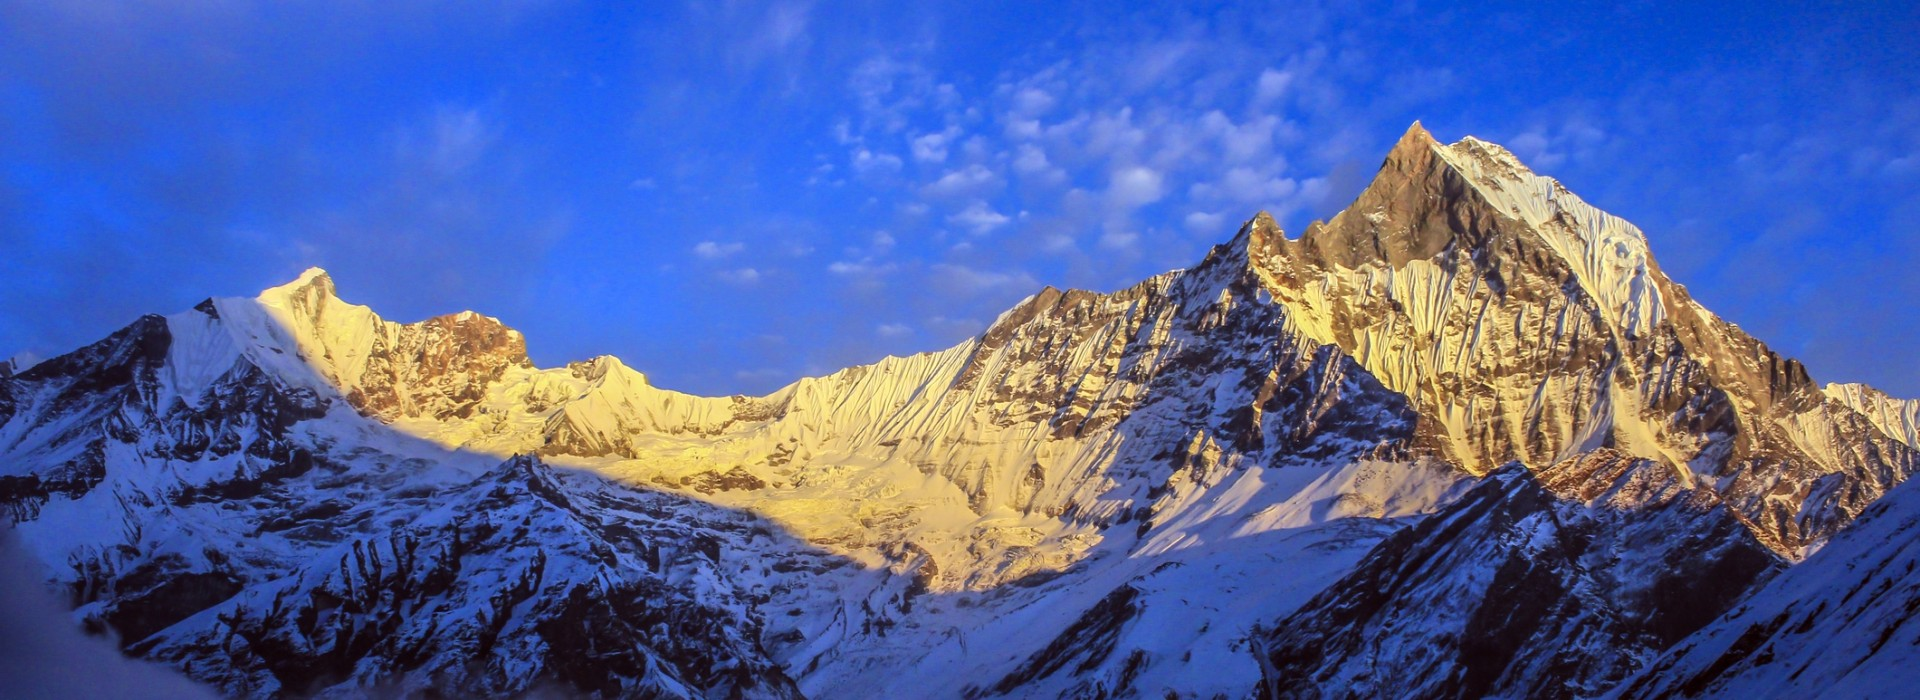 Annapurna Base Camp Trek - View of the Annapurna Range